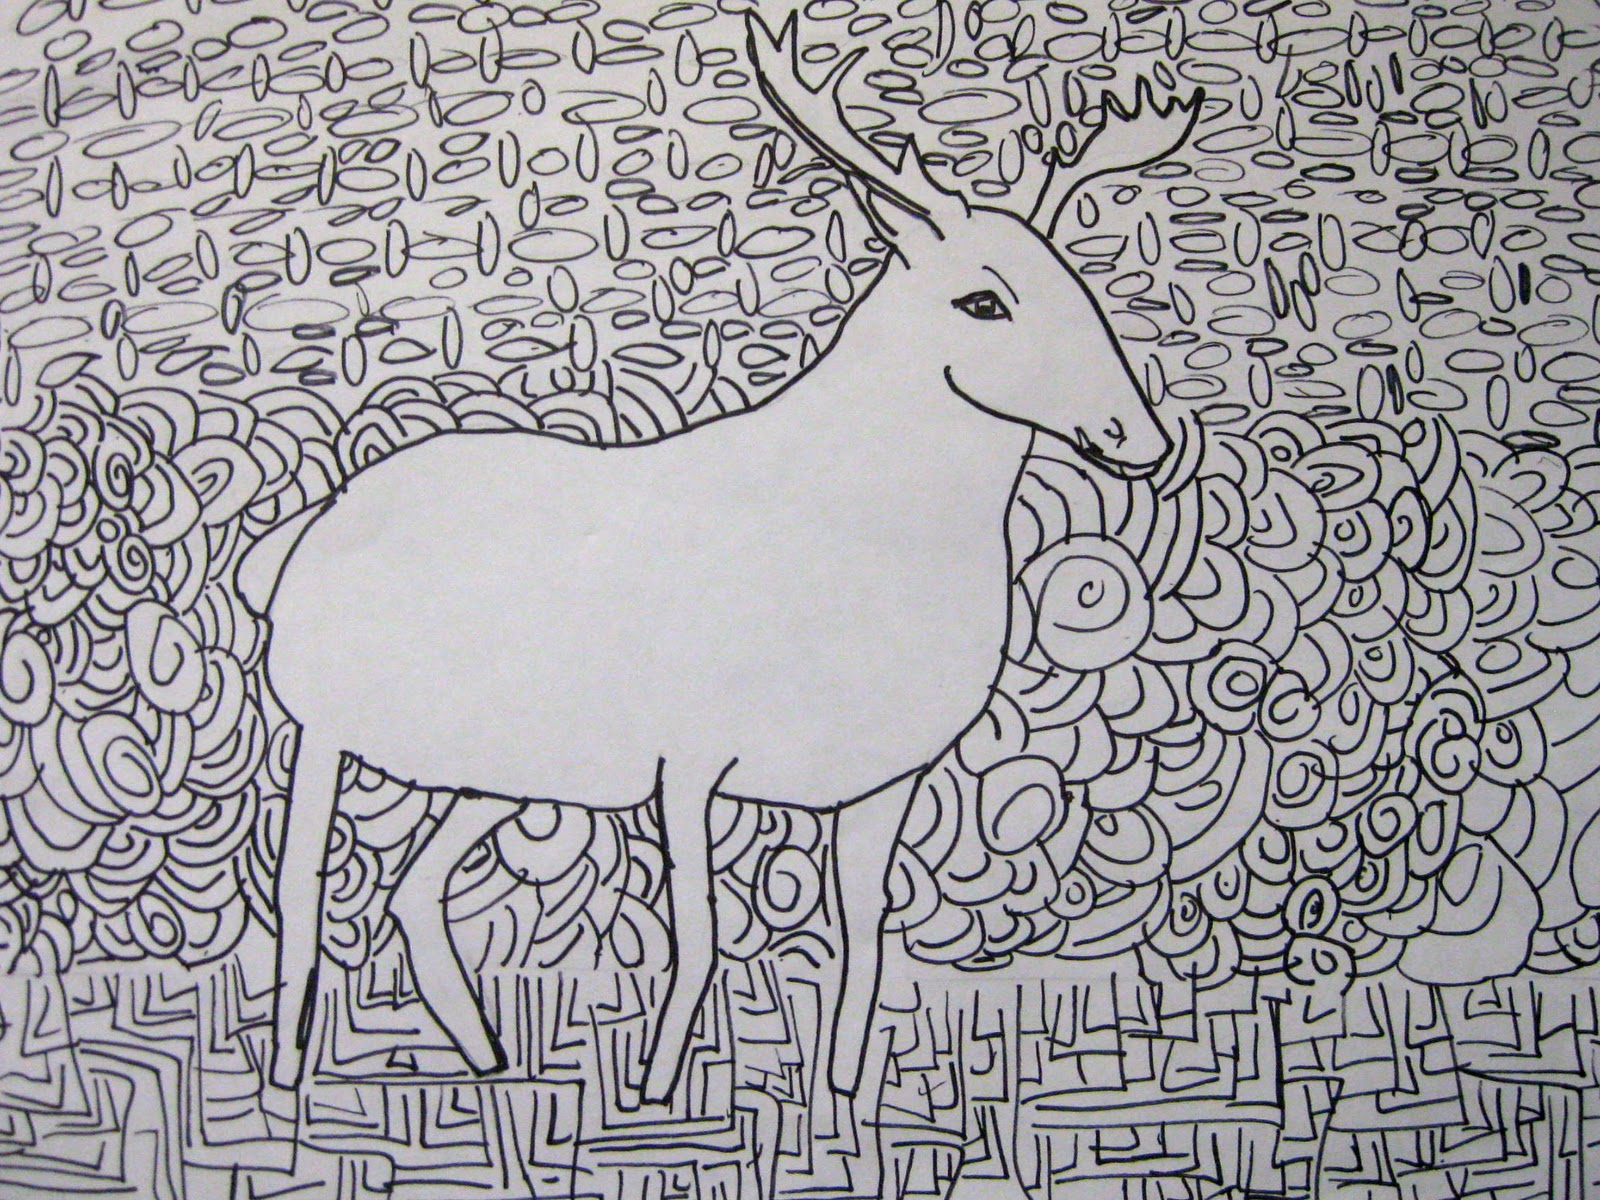 Contour Line Drawings Of Animals : Organized chaos th grade contour line drawing of animals